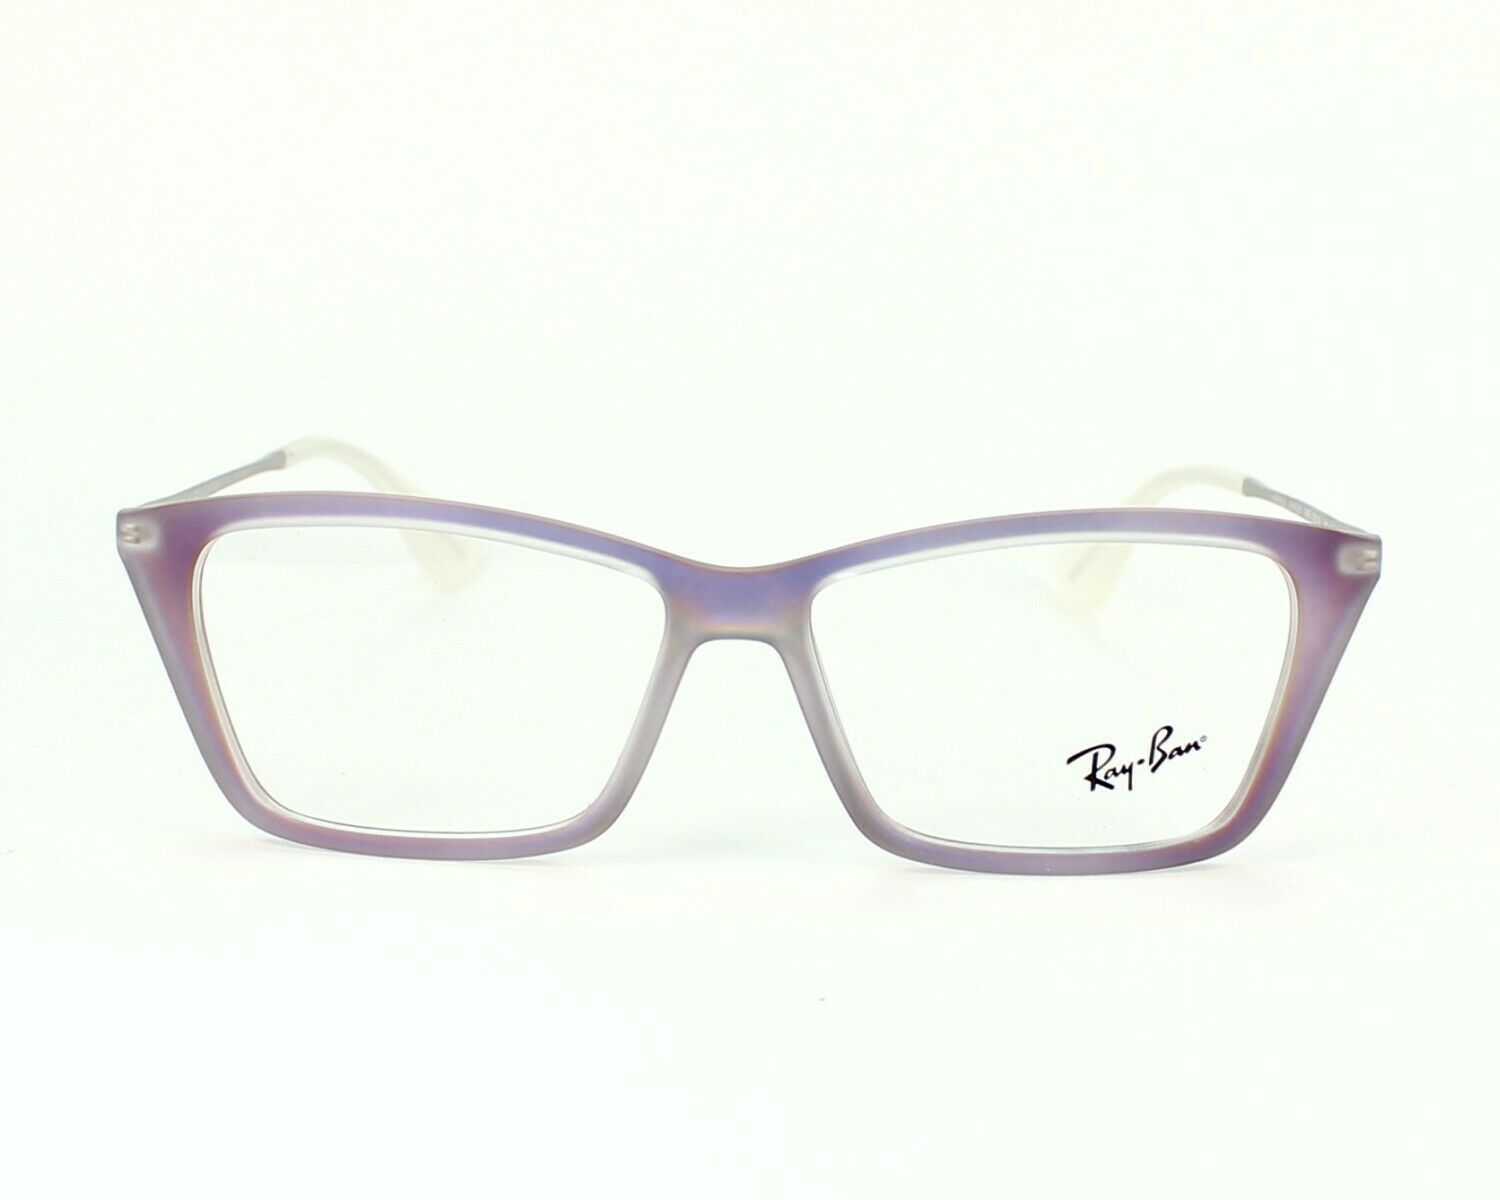 Ray Ban Eyeglasses Shirley RB7022 5498 RX-ABLE 54mm